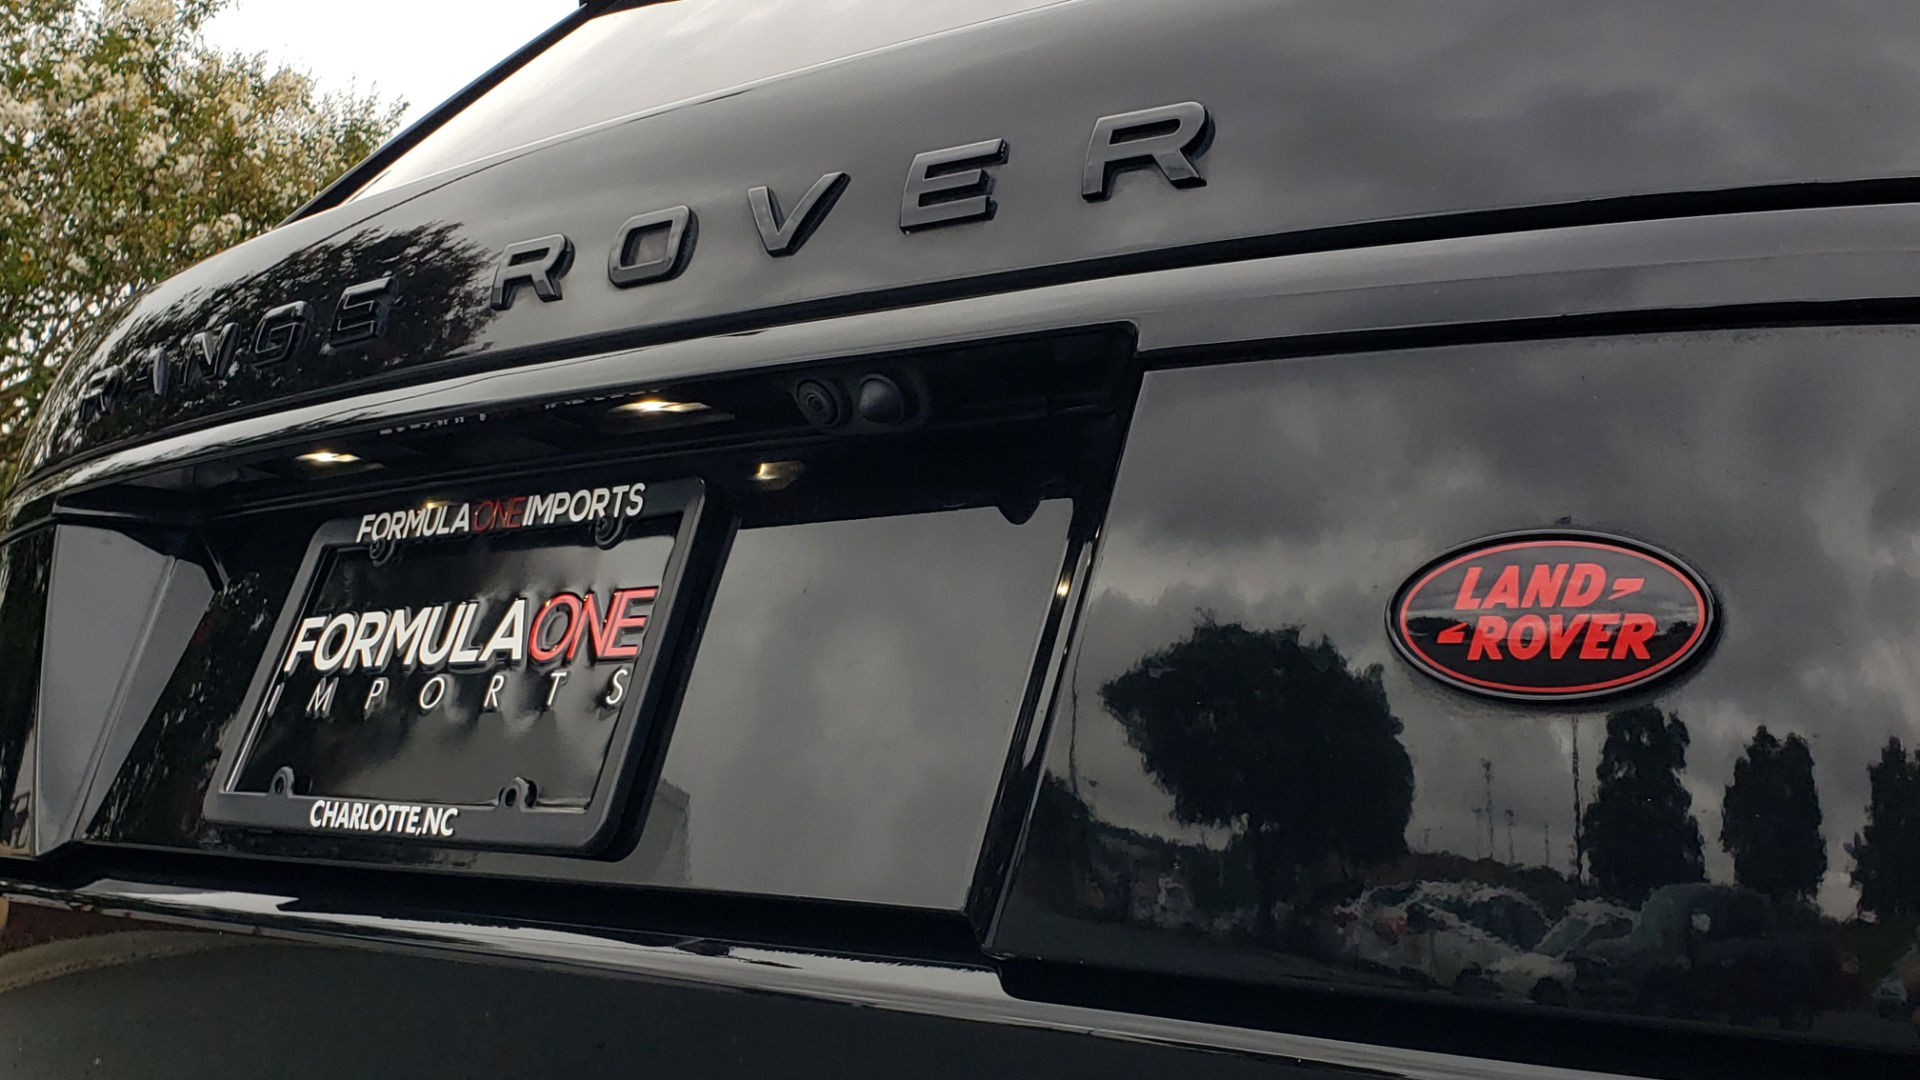 Used 2016 Land Rover RANGE ROVER AUTOBIOGRAPHY / SC-V8 / LWB / PANO-ROOF / NAV / MERIDIAN / ENT / REARVIEW for sale Sold at Formula Imports in Charlotte NC 28227 38